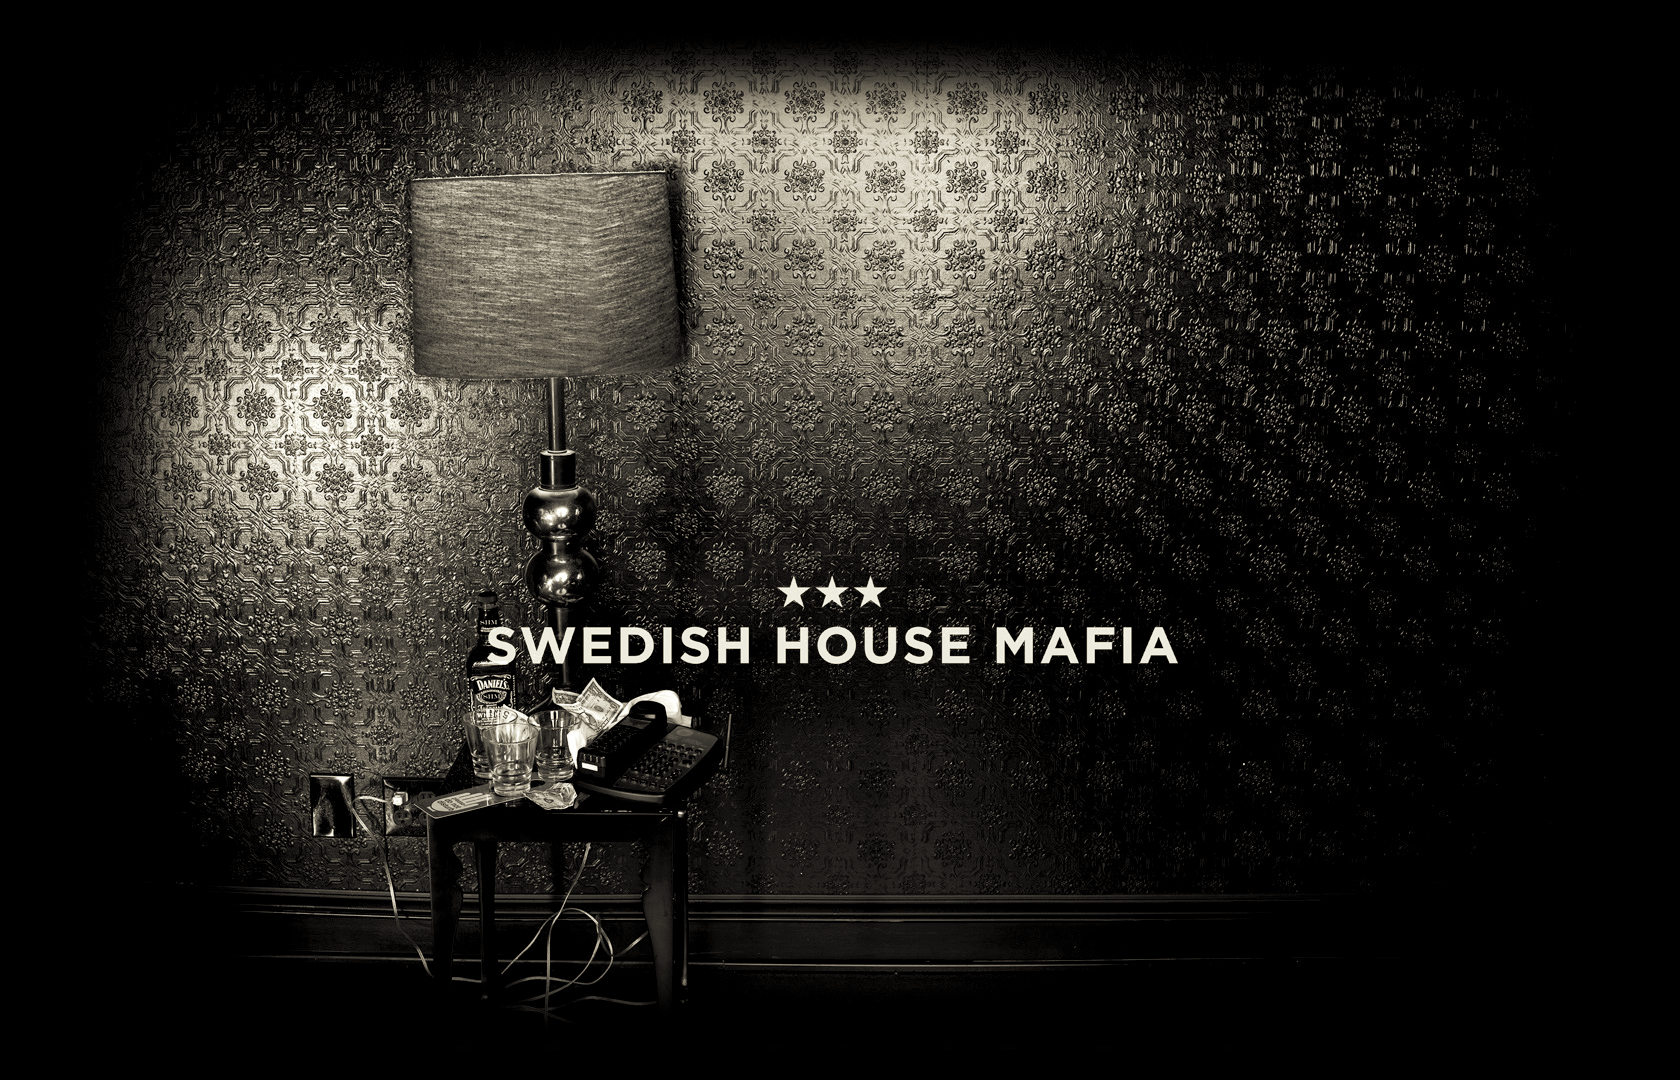 Swedish House Mafia Swedish House Mafia Wallpaper